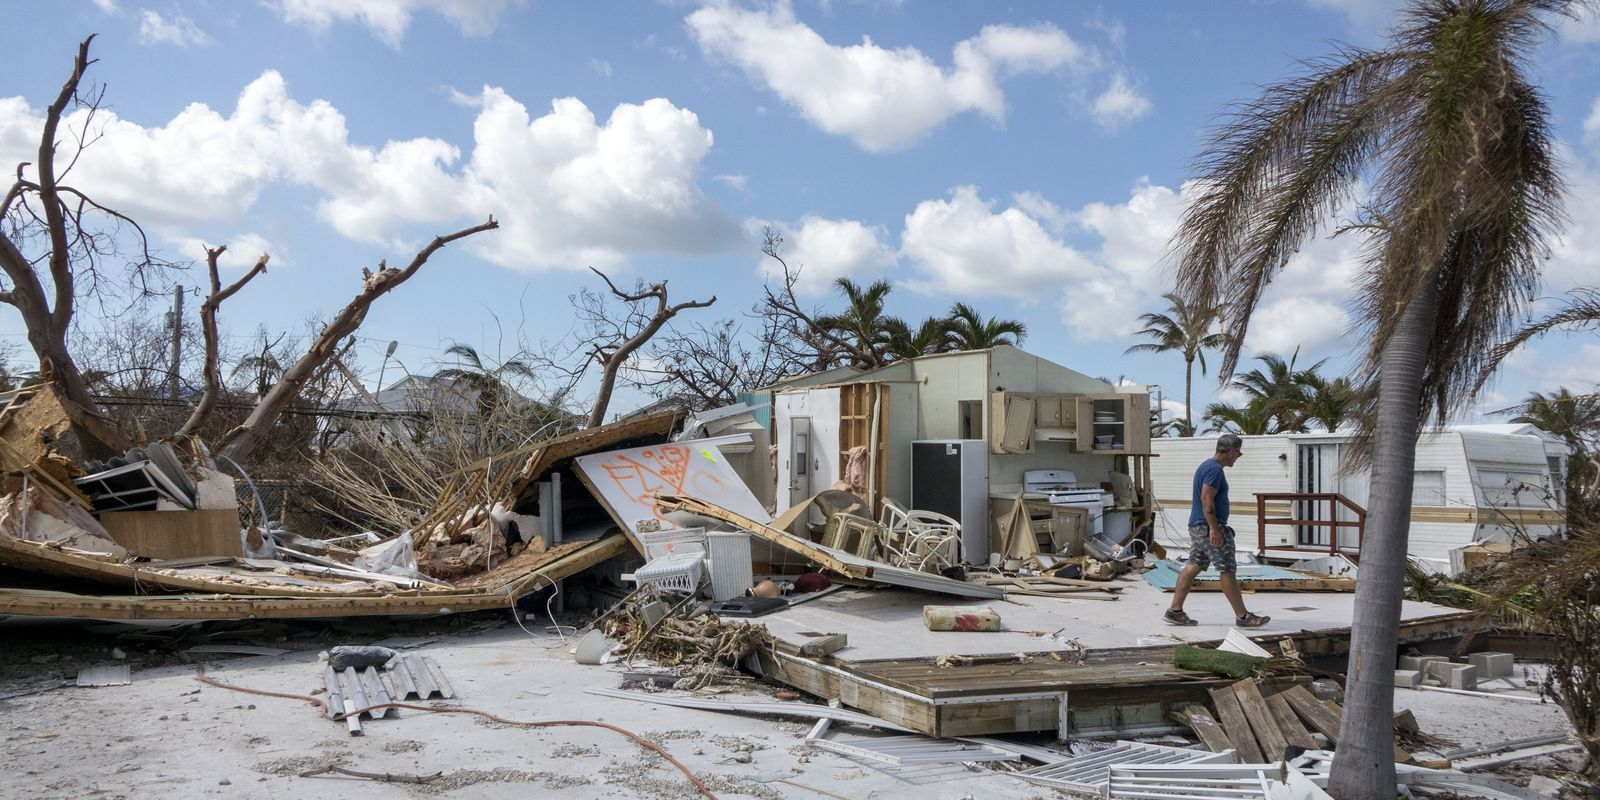 A house and trees are torn to pieces by Hurricane Harvey in Texas.